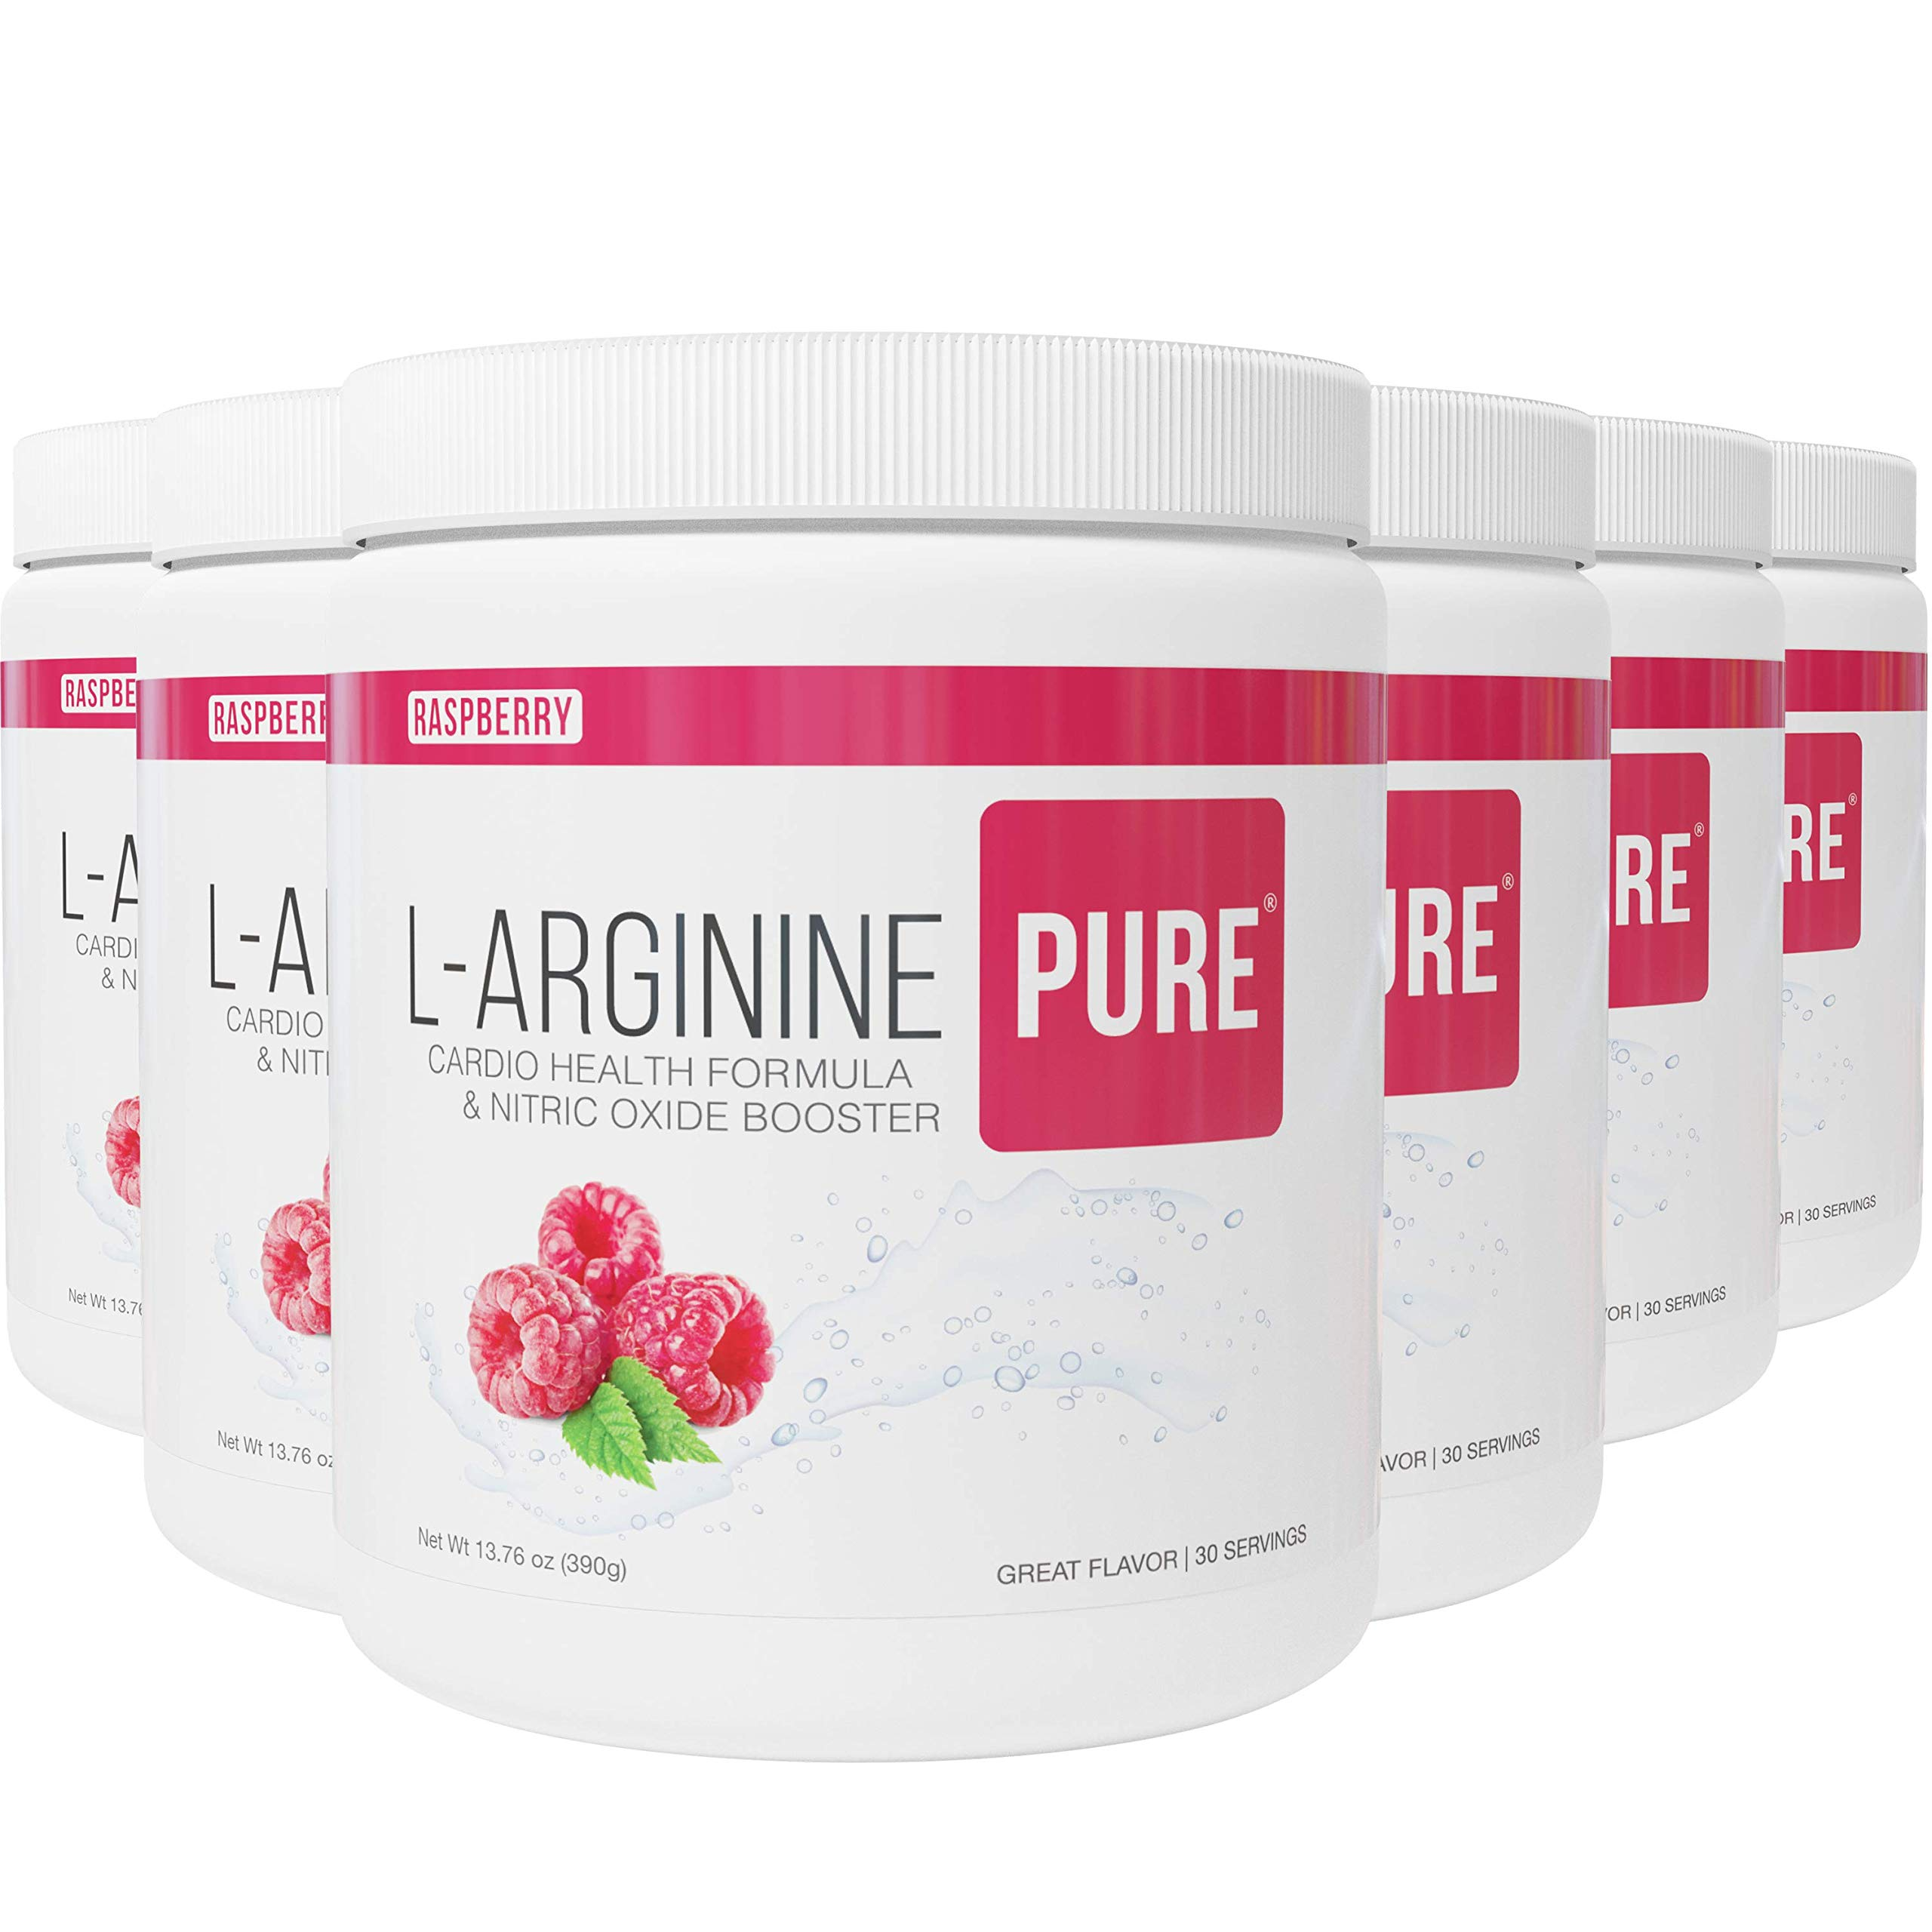 L-Arginine Pure ® | Best Tasting L-arginine Drink Mix Formula for Blood Pressure, Cholesterol, Heart Health, and More Energy (13.7 oz, 390g) (Raspberry, 6 Bottles)